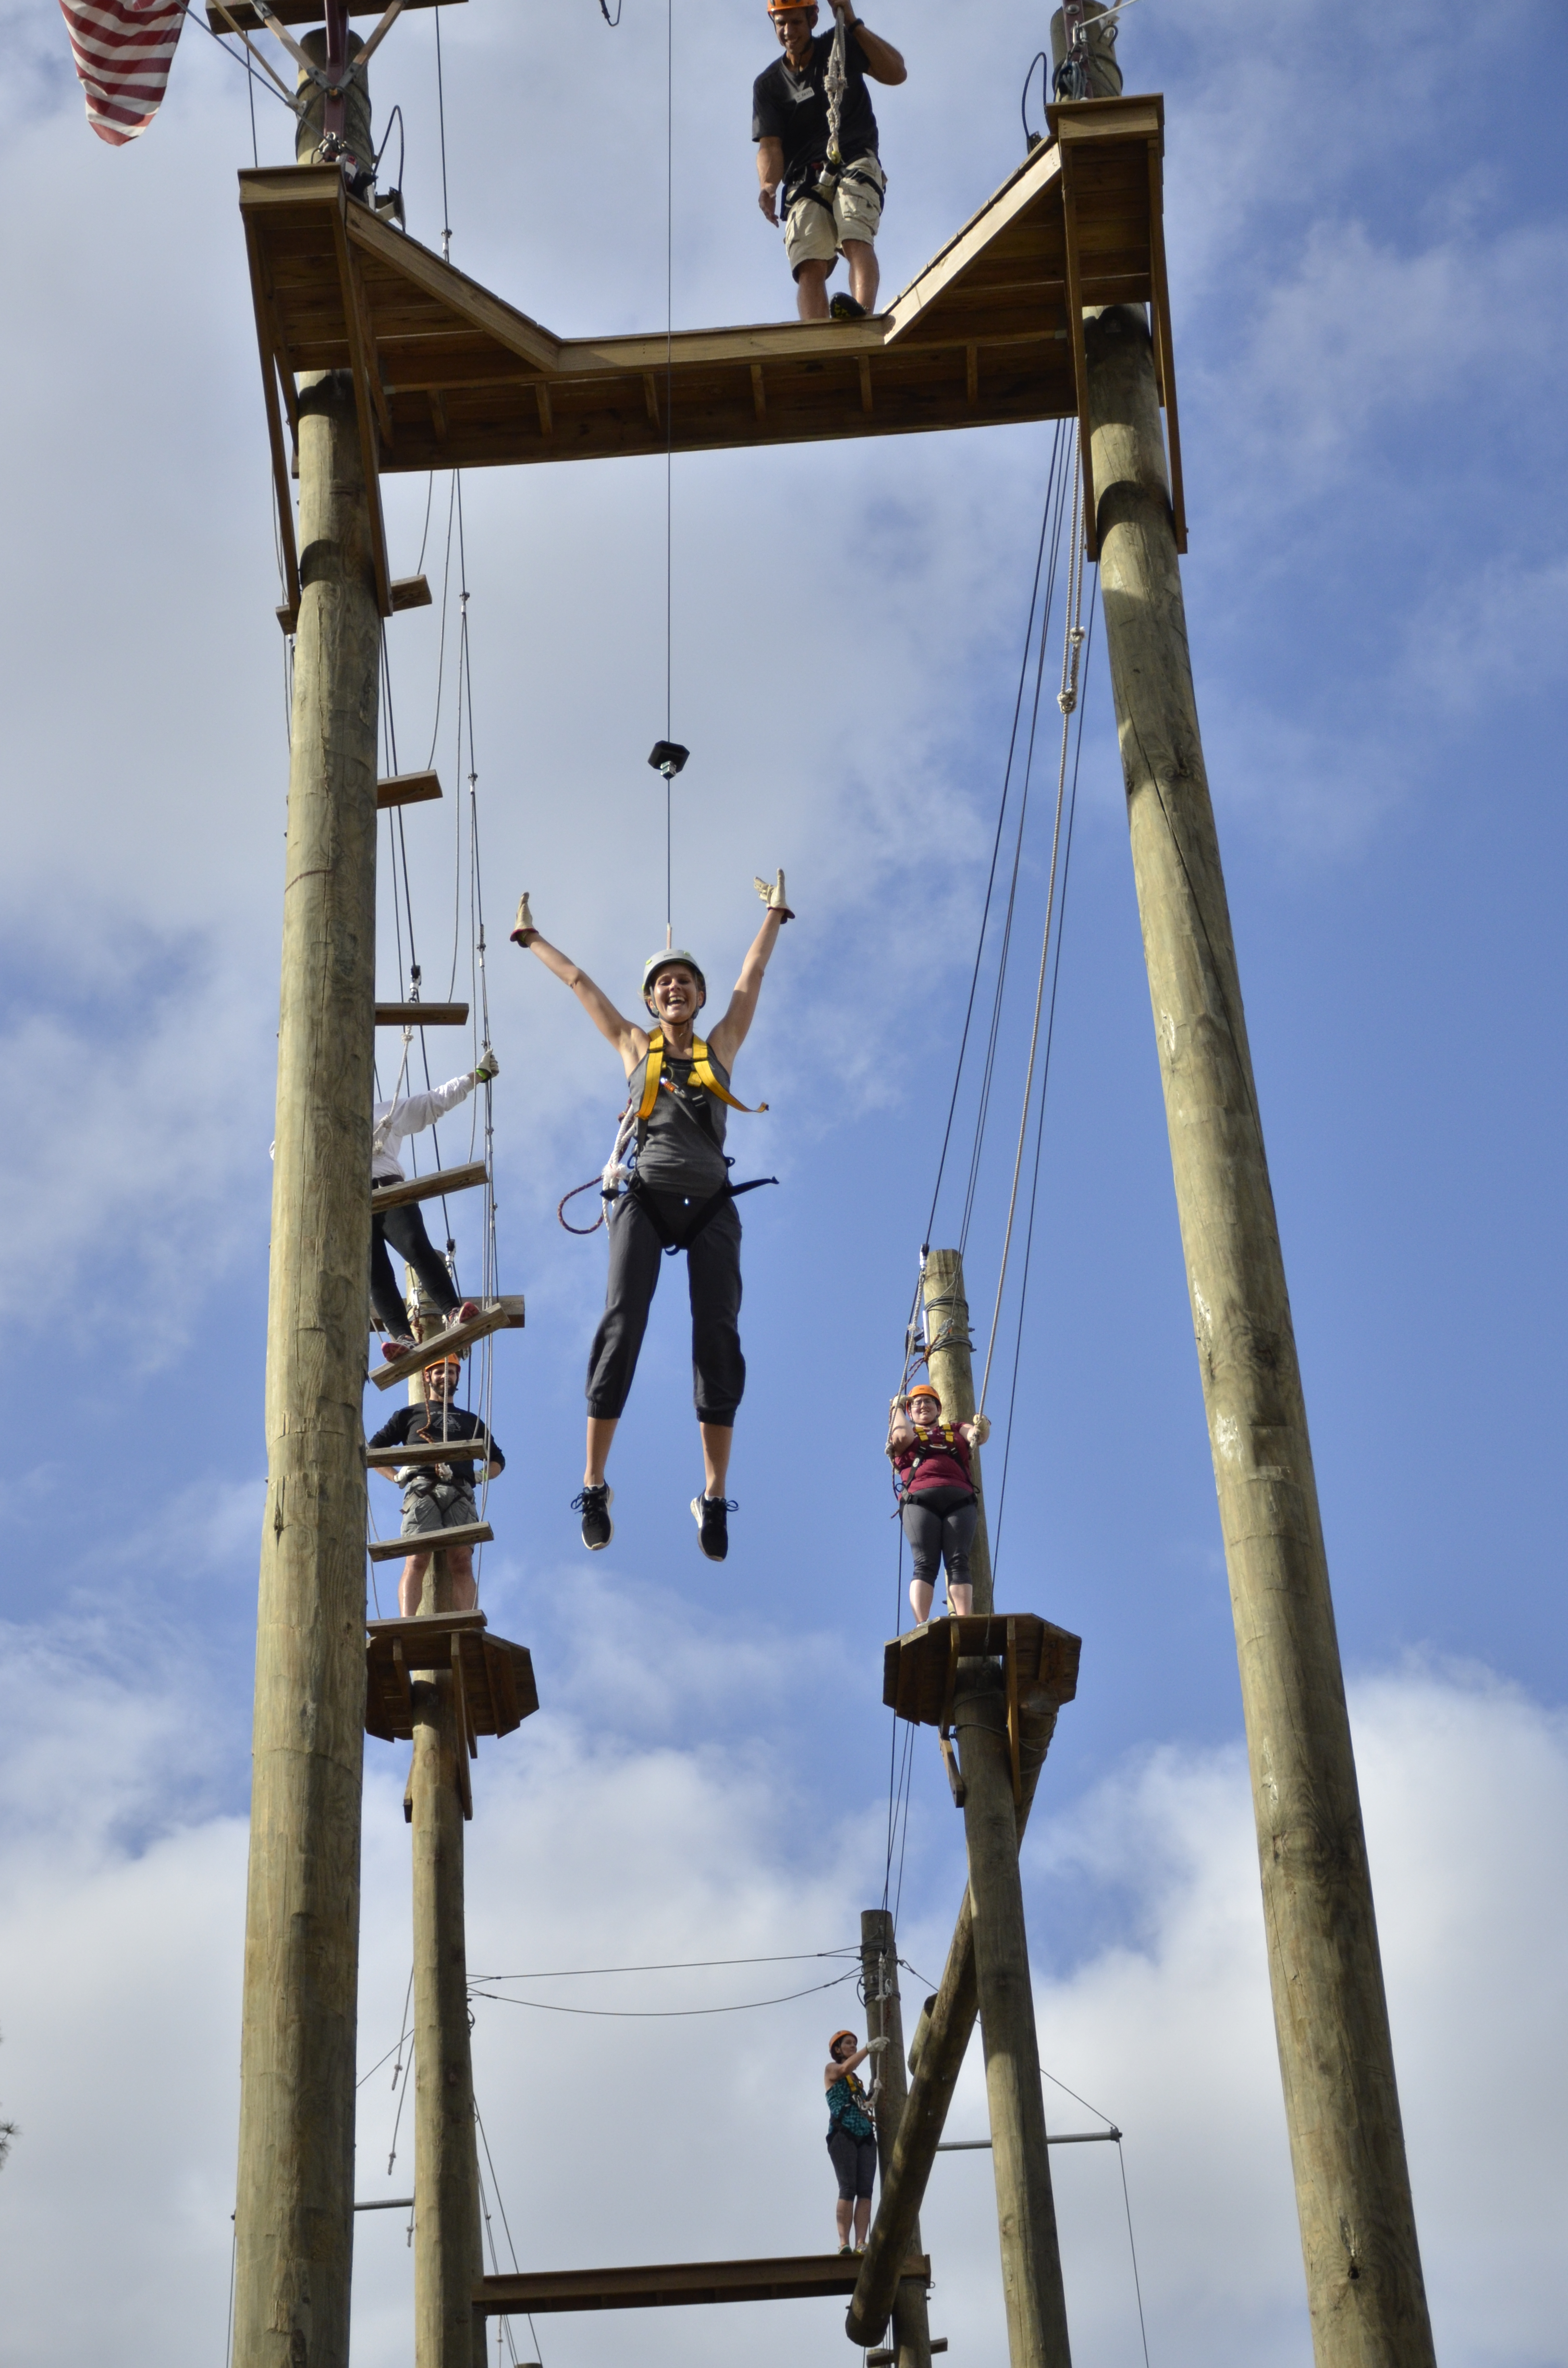 Meagan on the high ropes